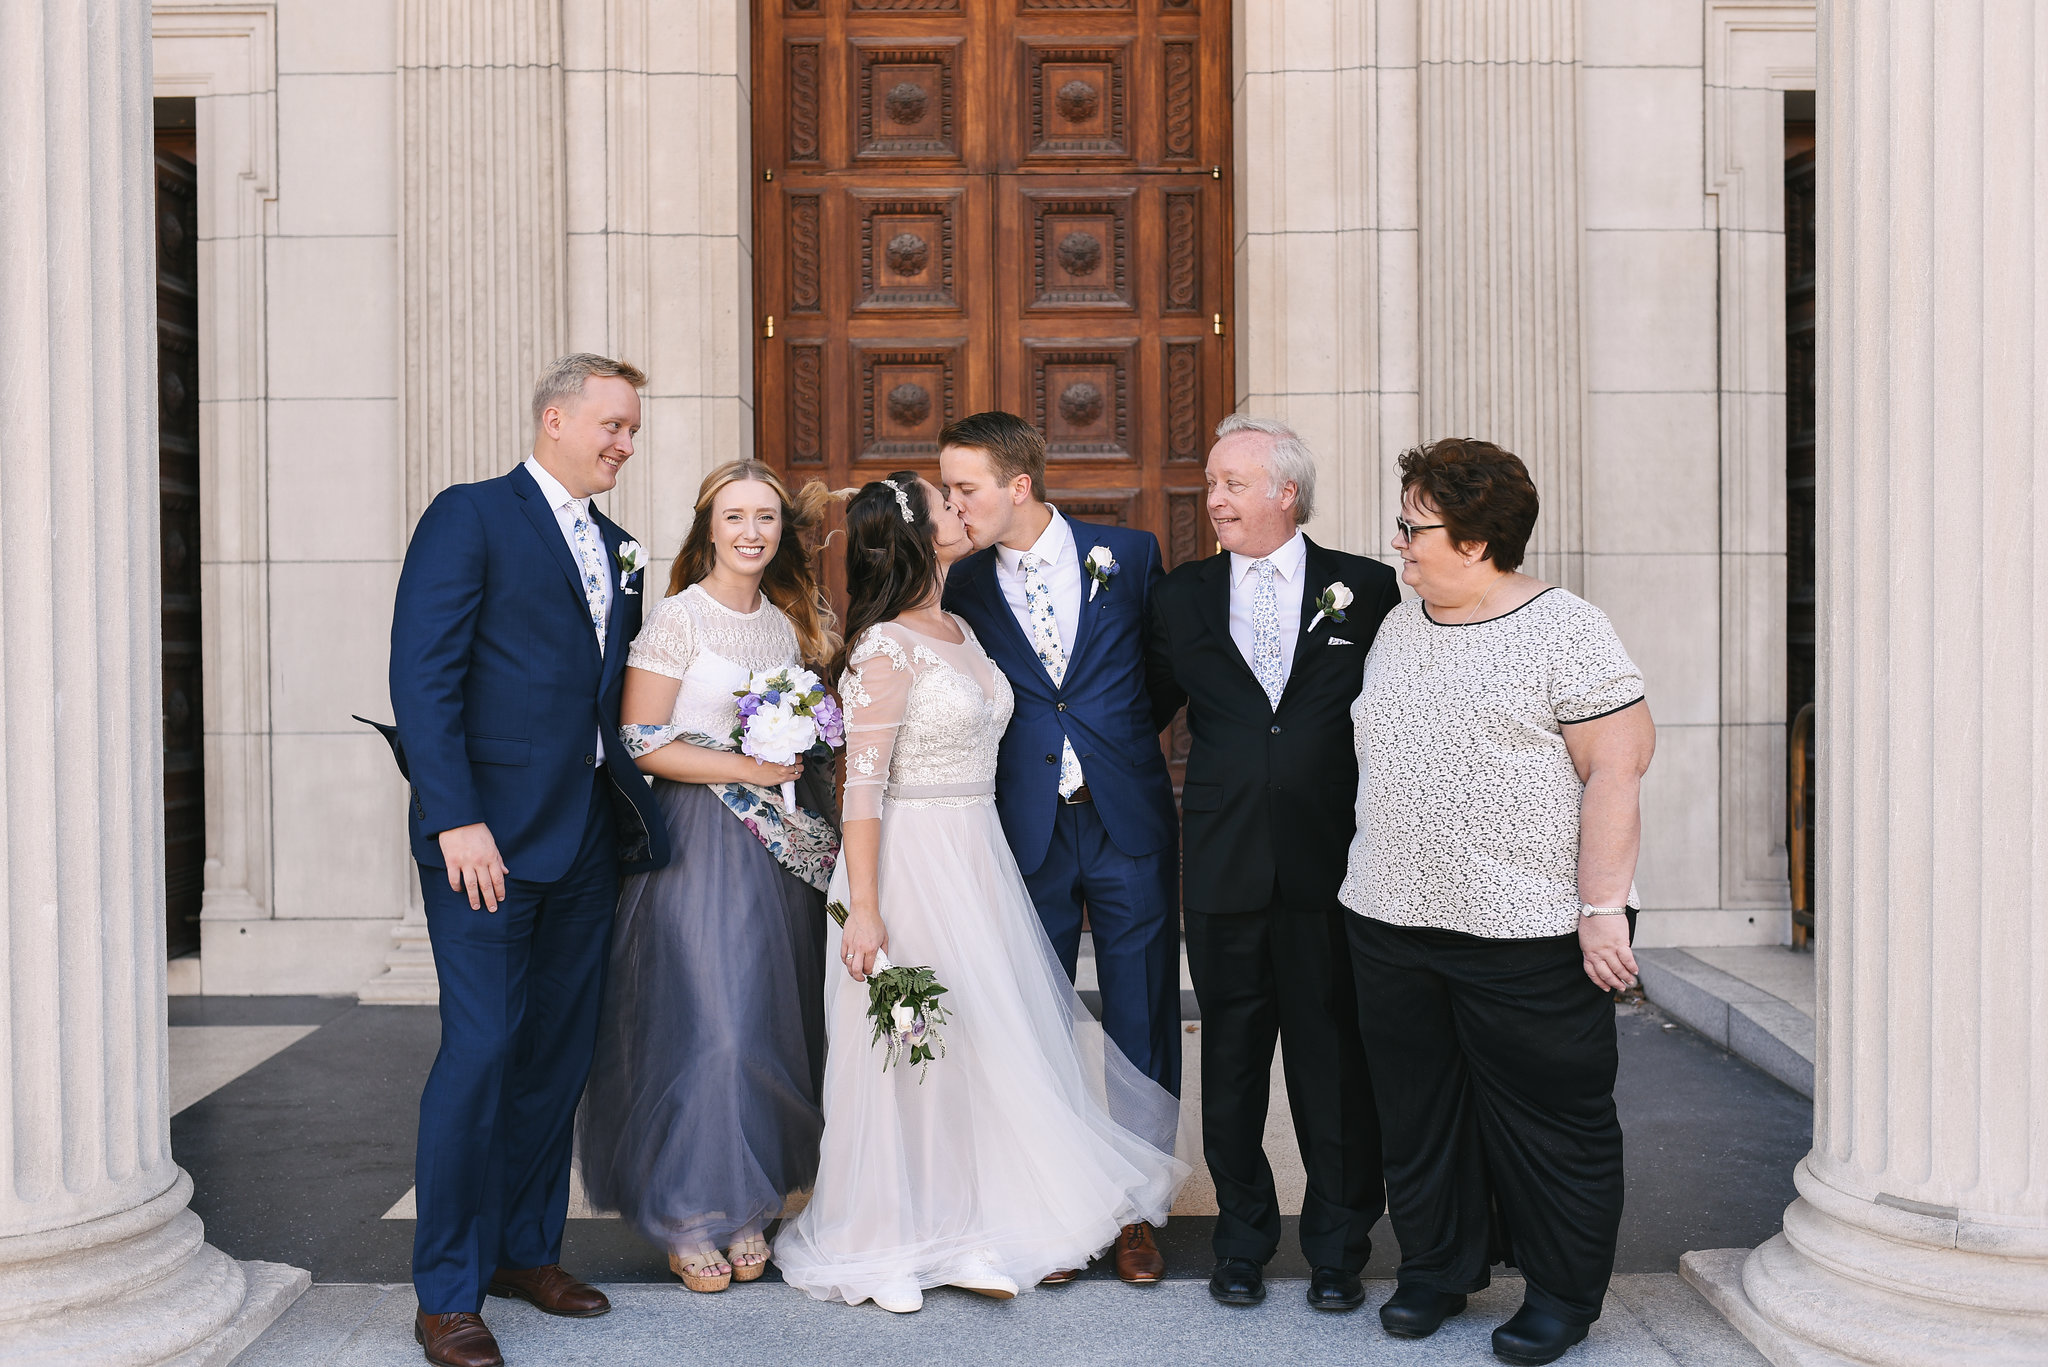 Baltimore, Canton, Church Wedding, Modern, Outdoors, Maryland Wedding Photographer, Romantic, Classic, St. Casimir Church, Portrait of bride and groom with family, bride and groom kissing